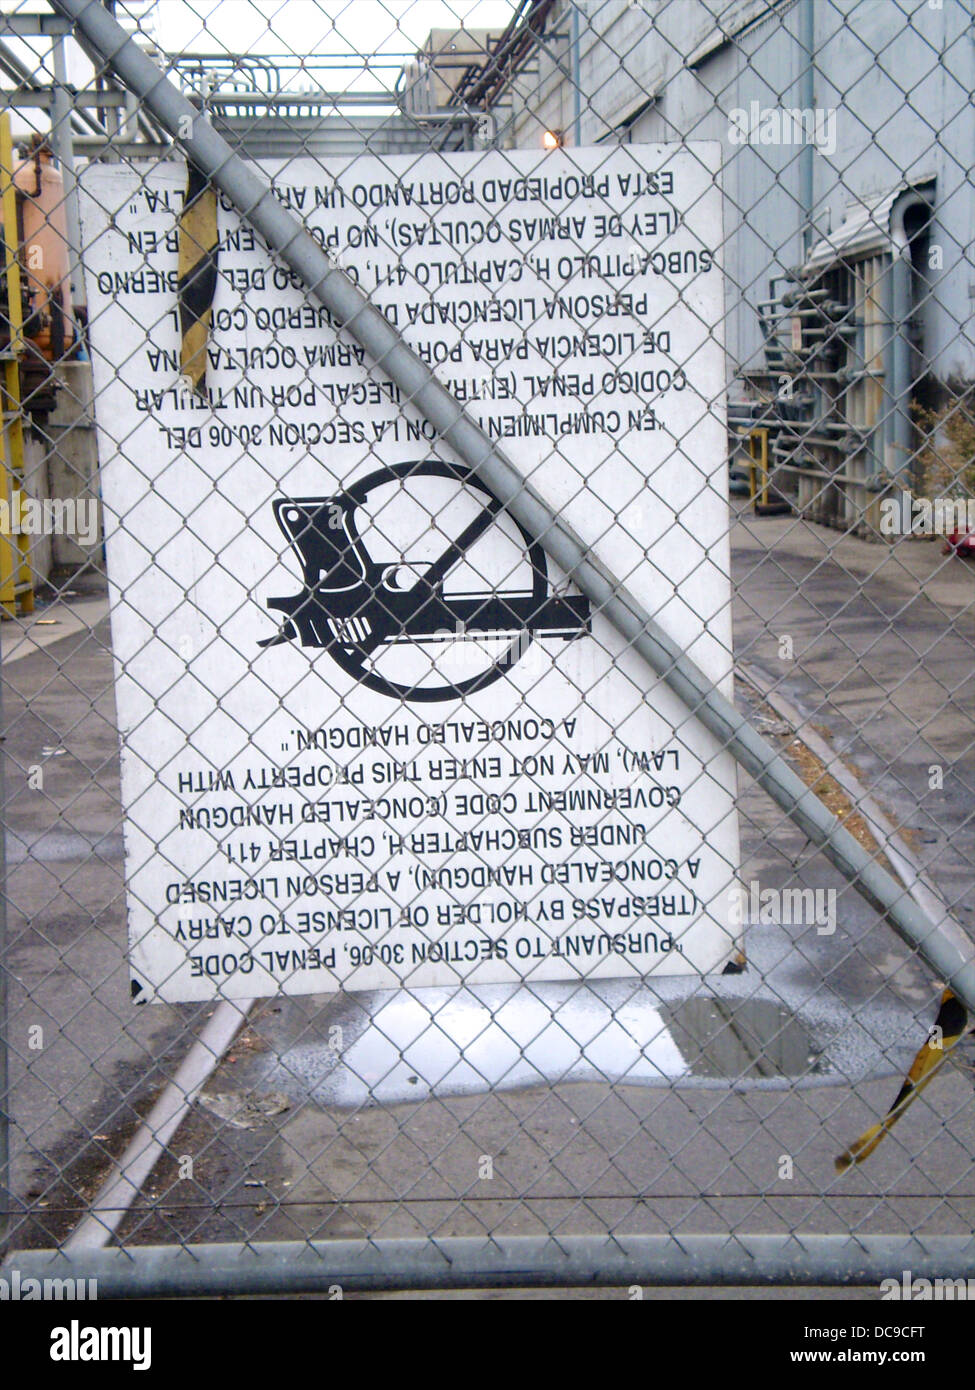 Upside down gun not permitted sign. - Stock Image